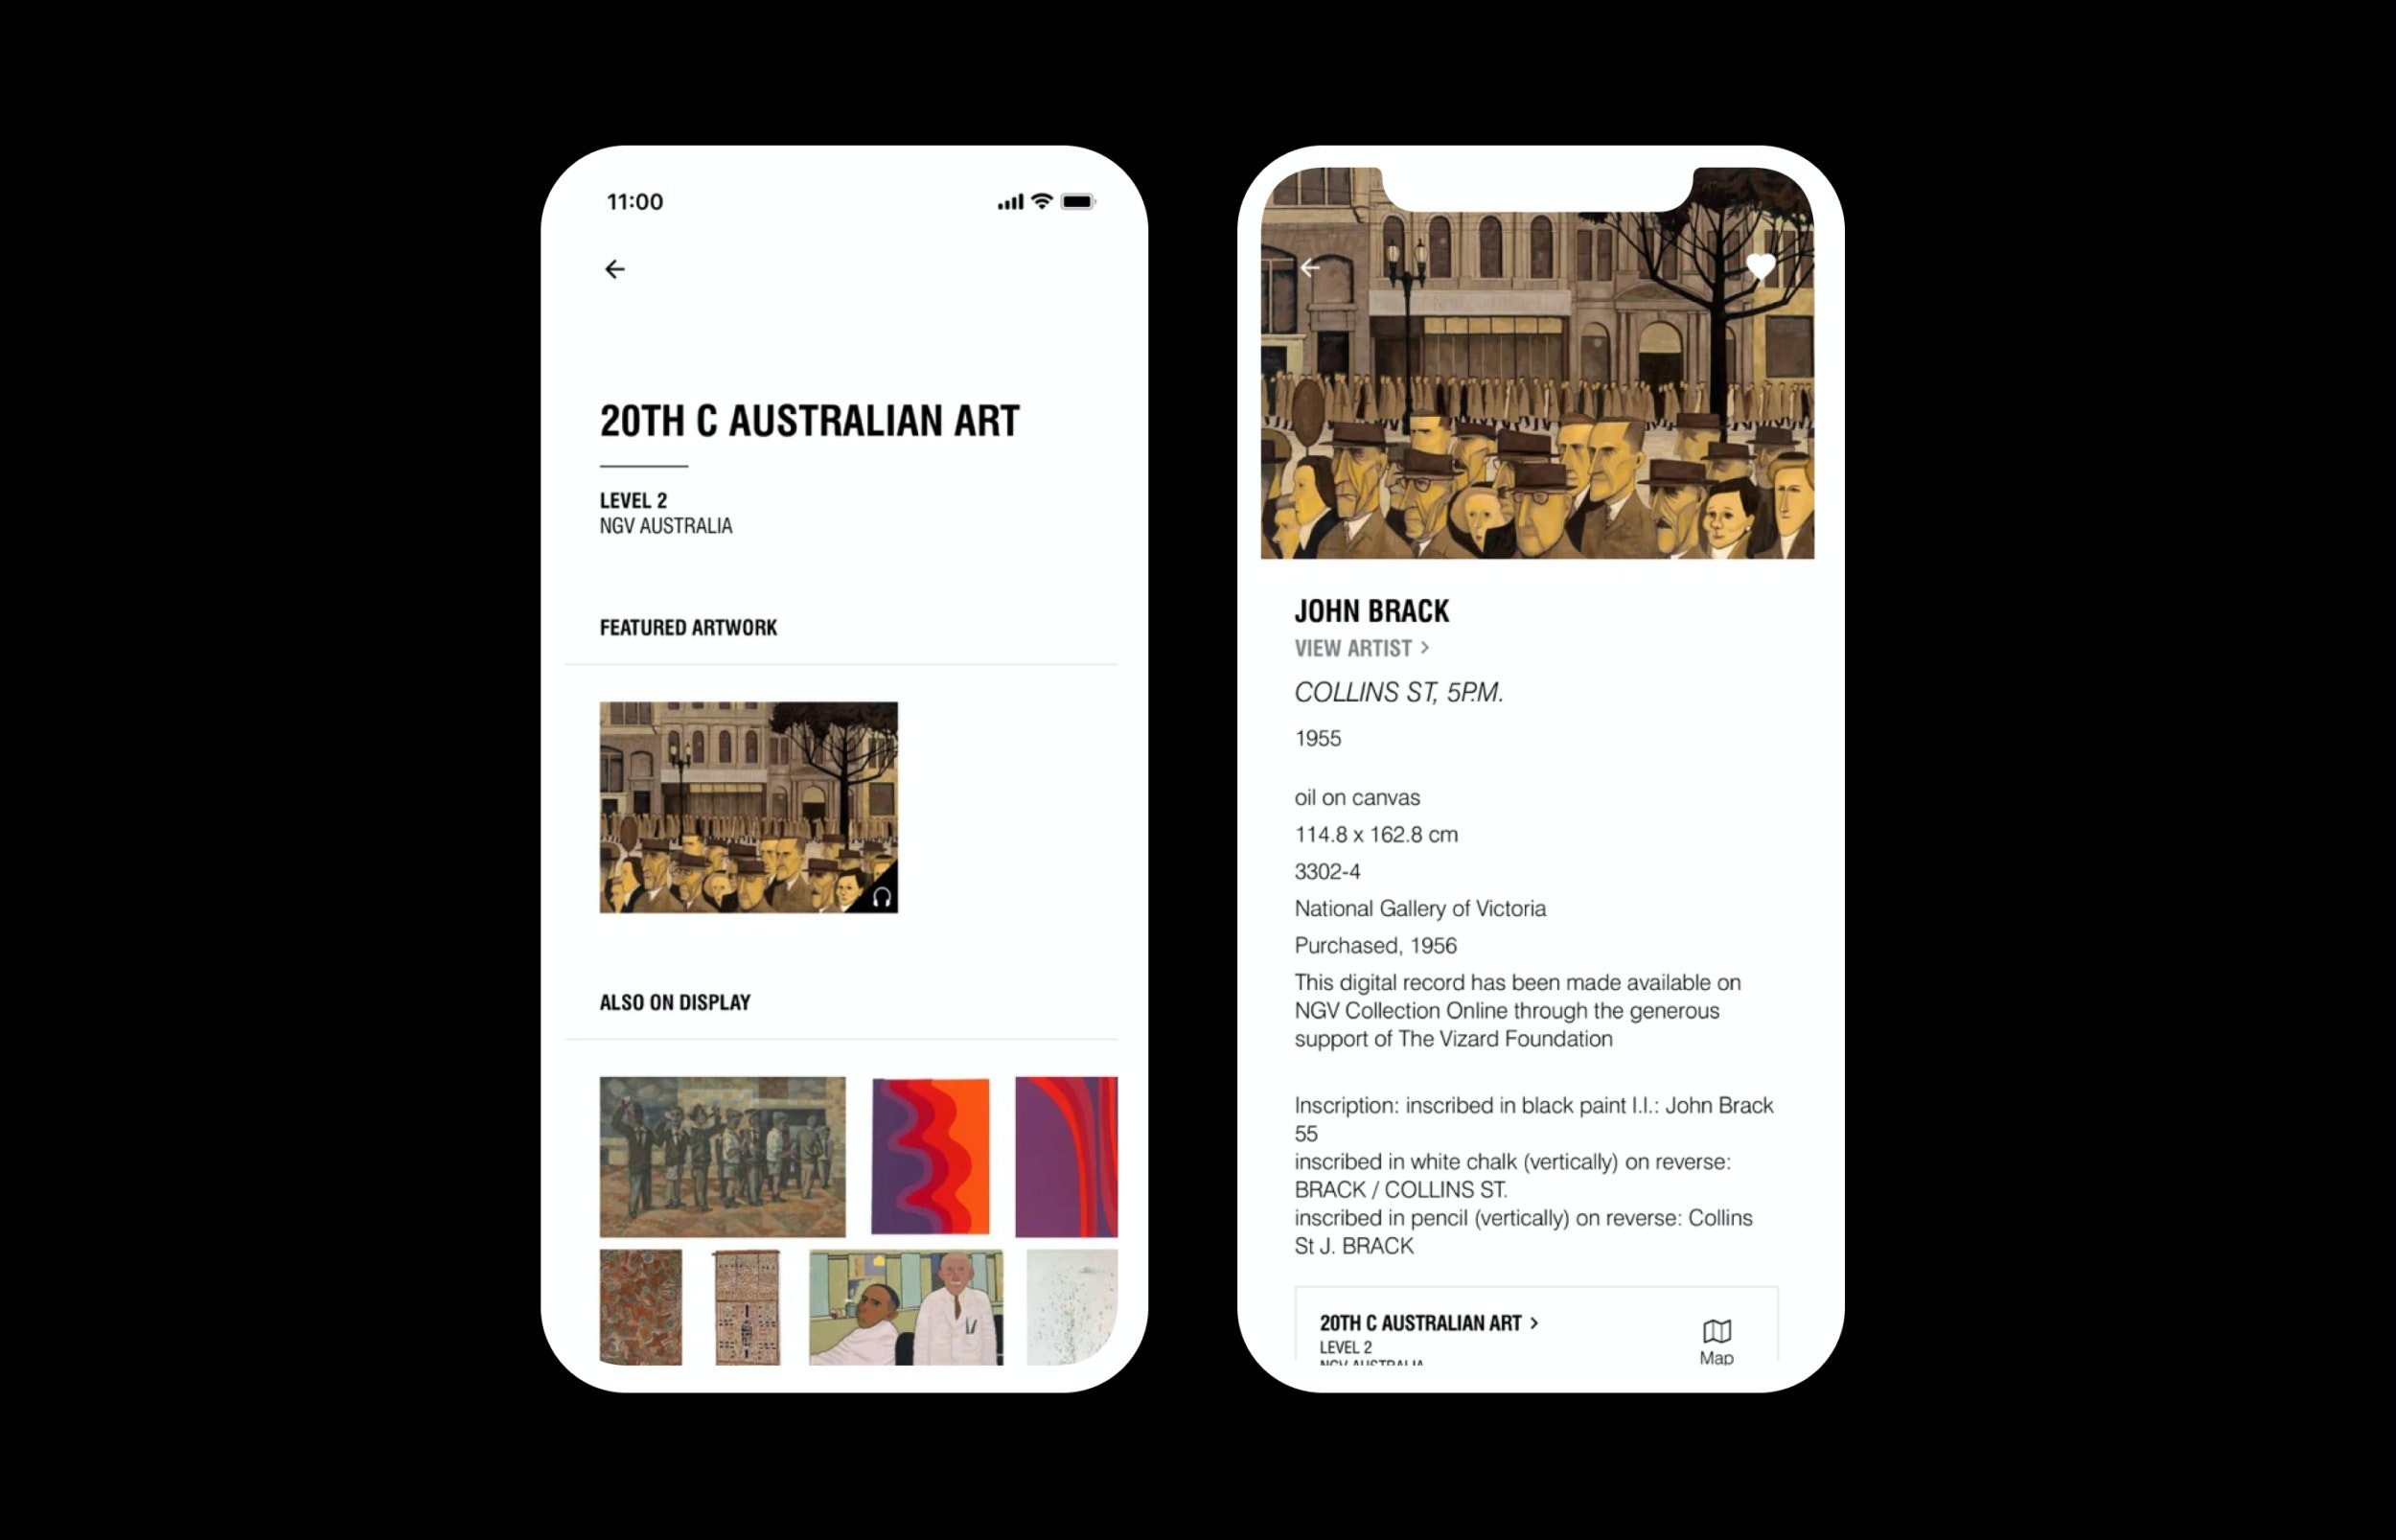 John Brack exhibition shown on Mobile iOS app for National Gallery of Victoria NGV